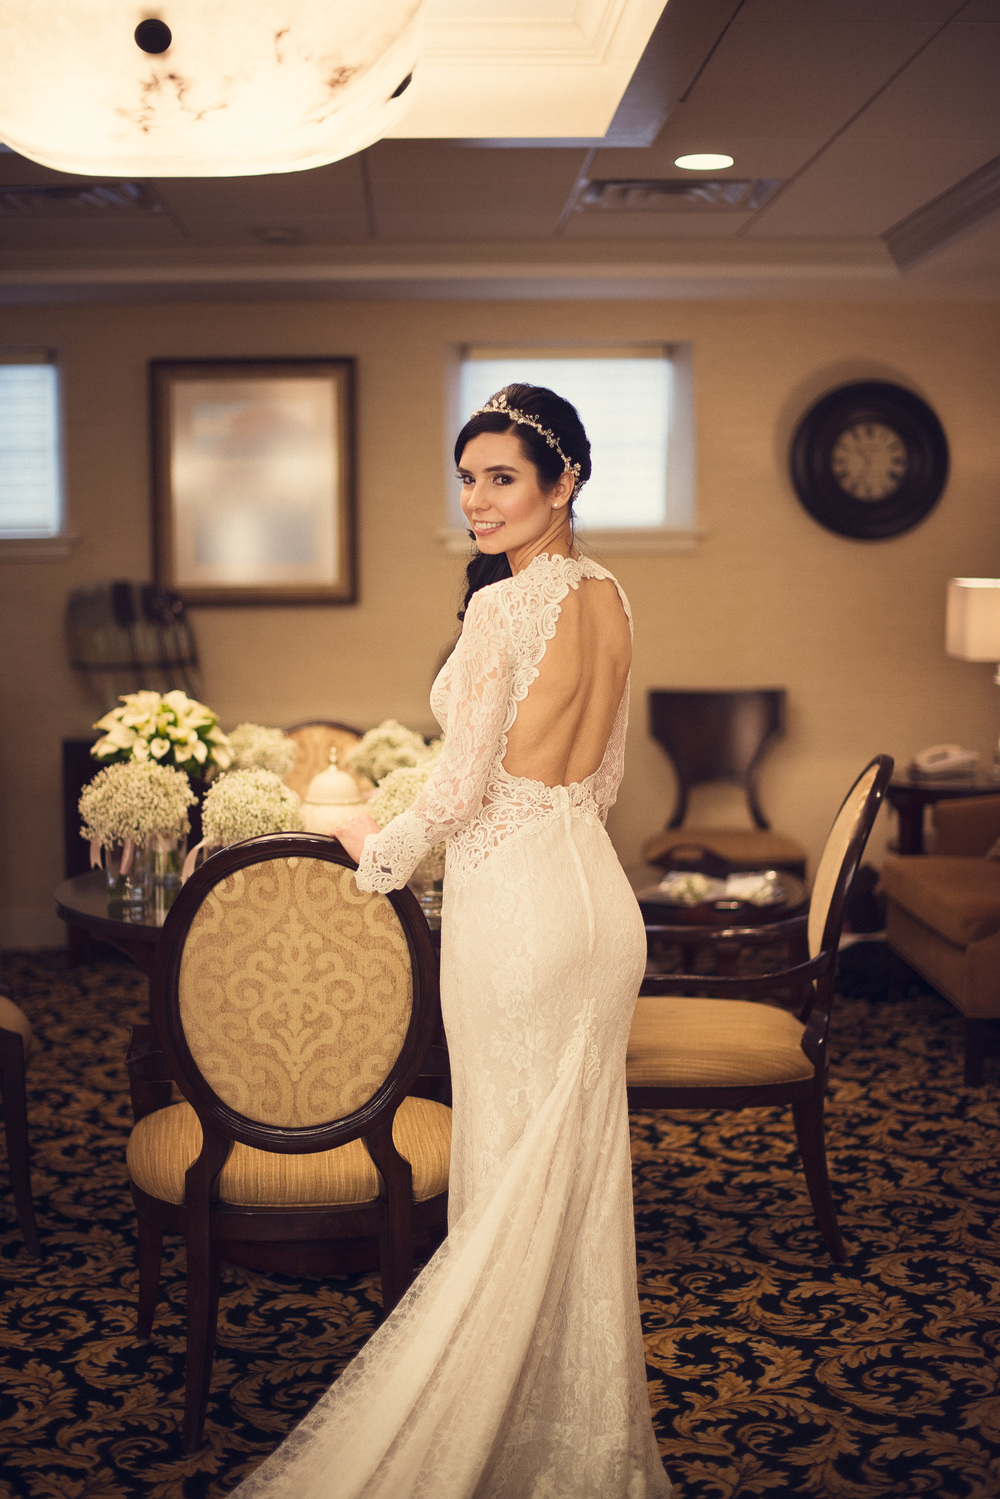 Bride with open back dress with hand on chair THPHOTO